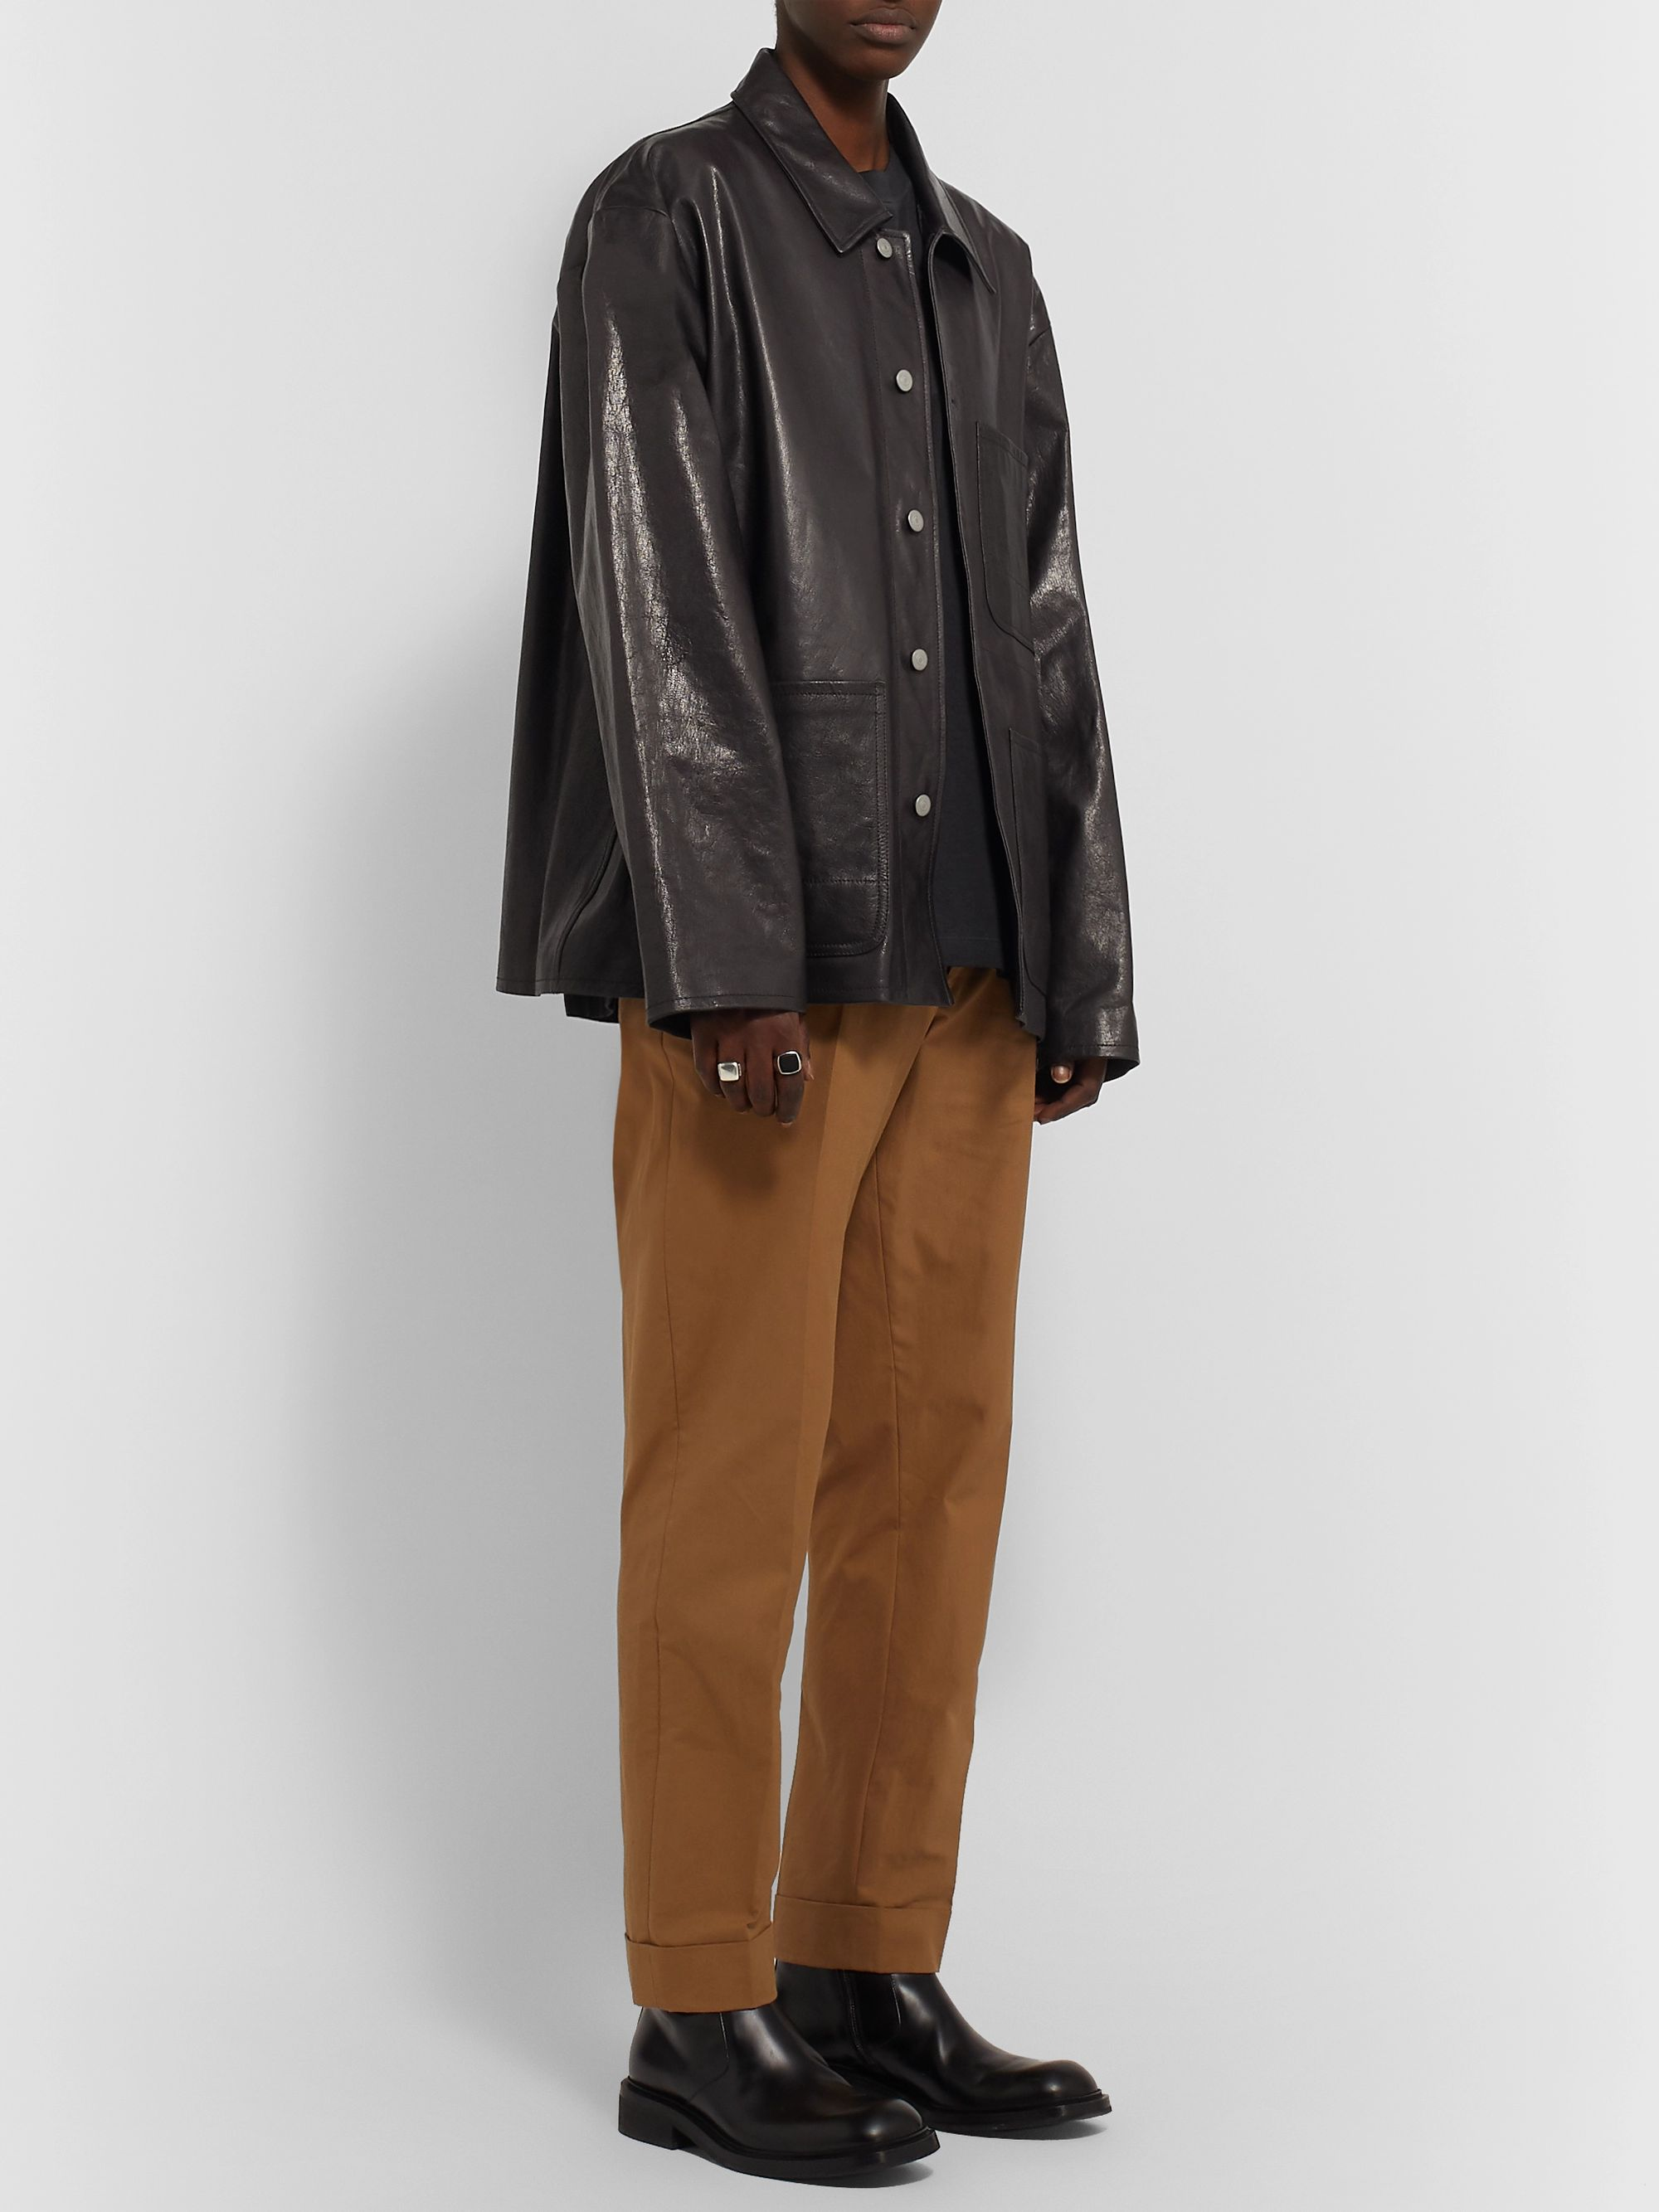 Maison Margiela Full-Grain Leather Jacket